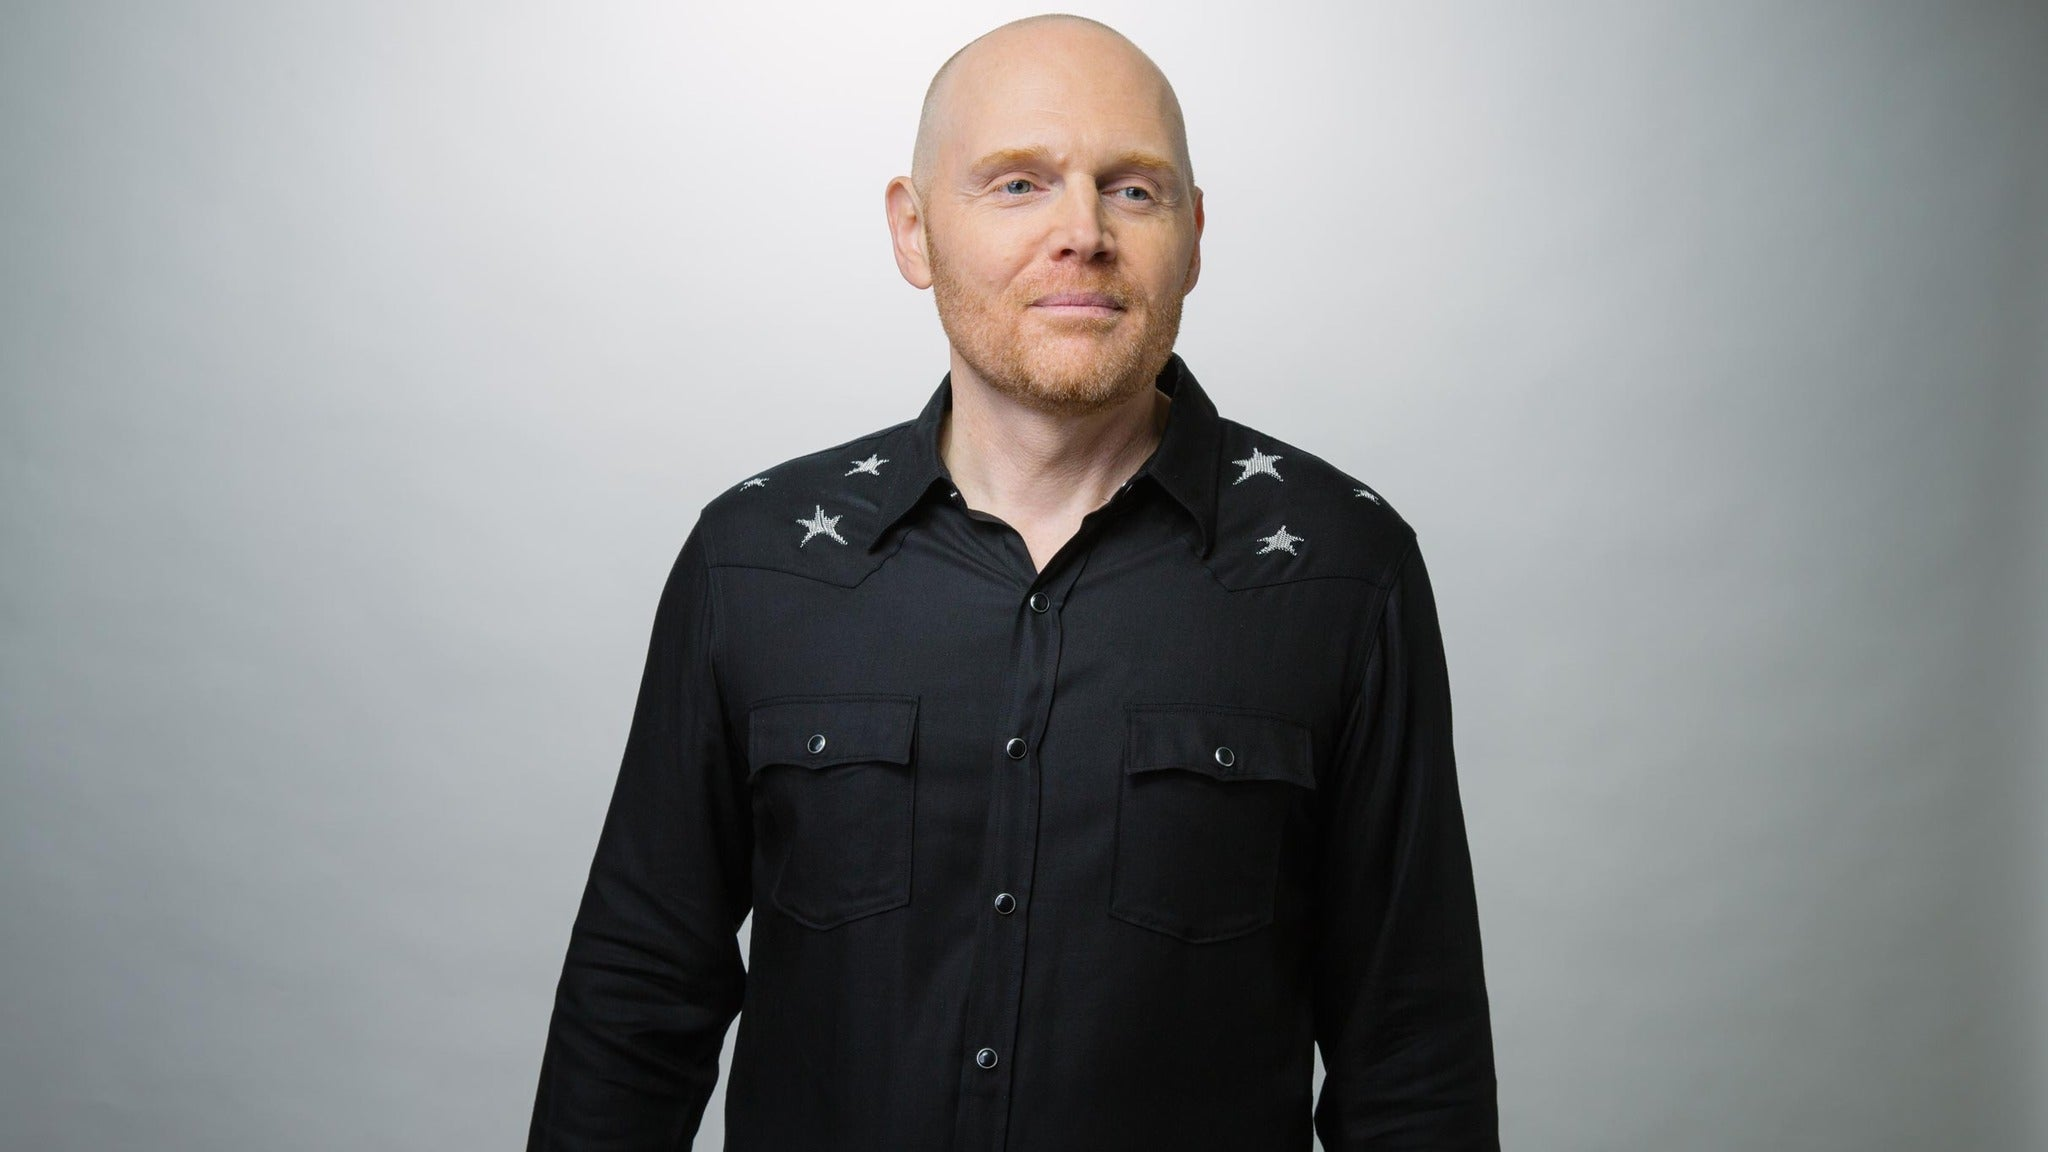 SORRY, THIS EVENT IS NO LONGER ACTIVE<br>Bill Burr at Arlington Theatre - Santa Barbara, CA 93101